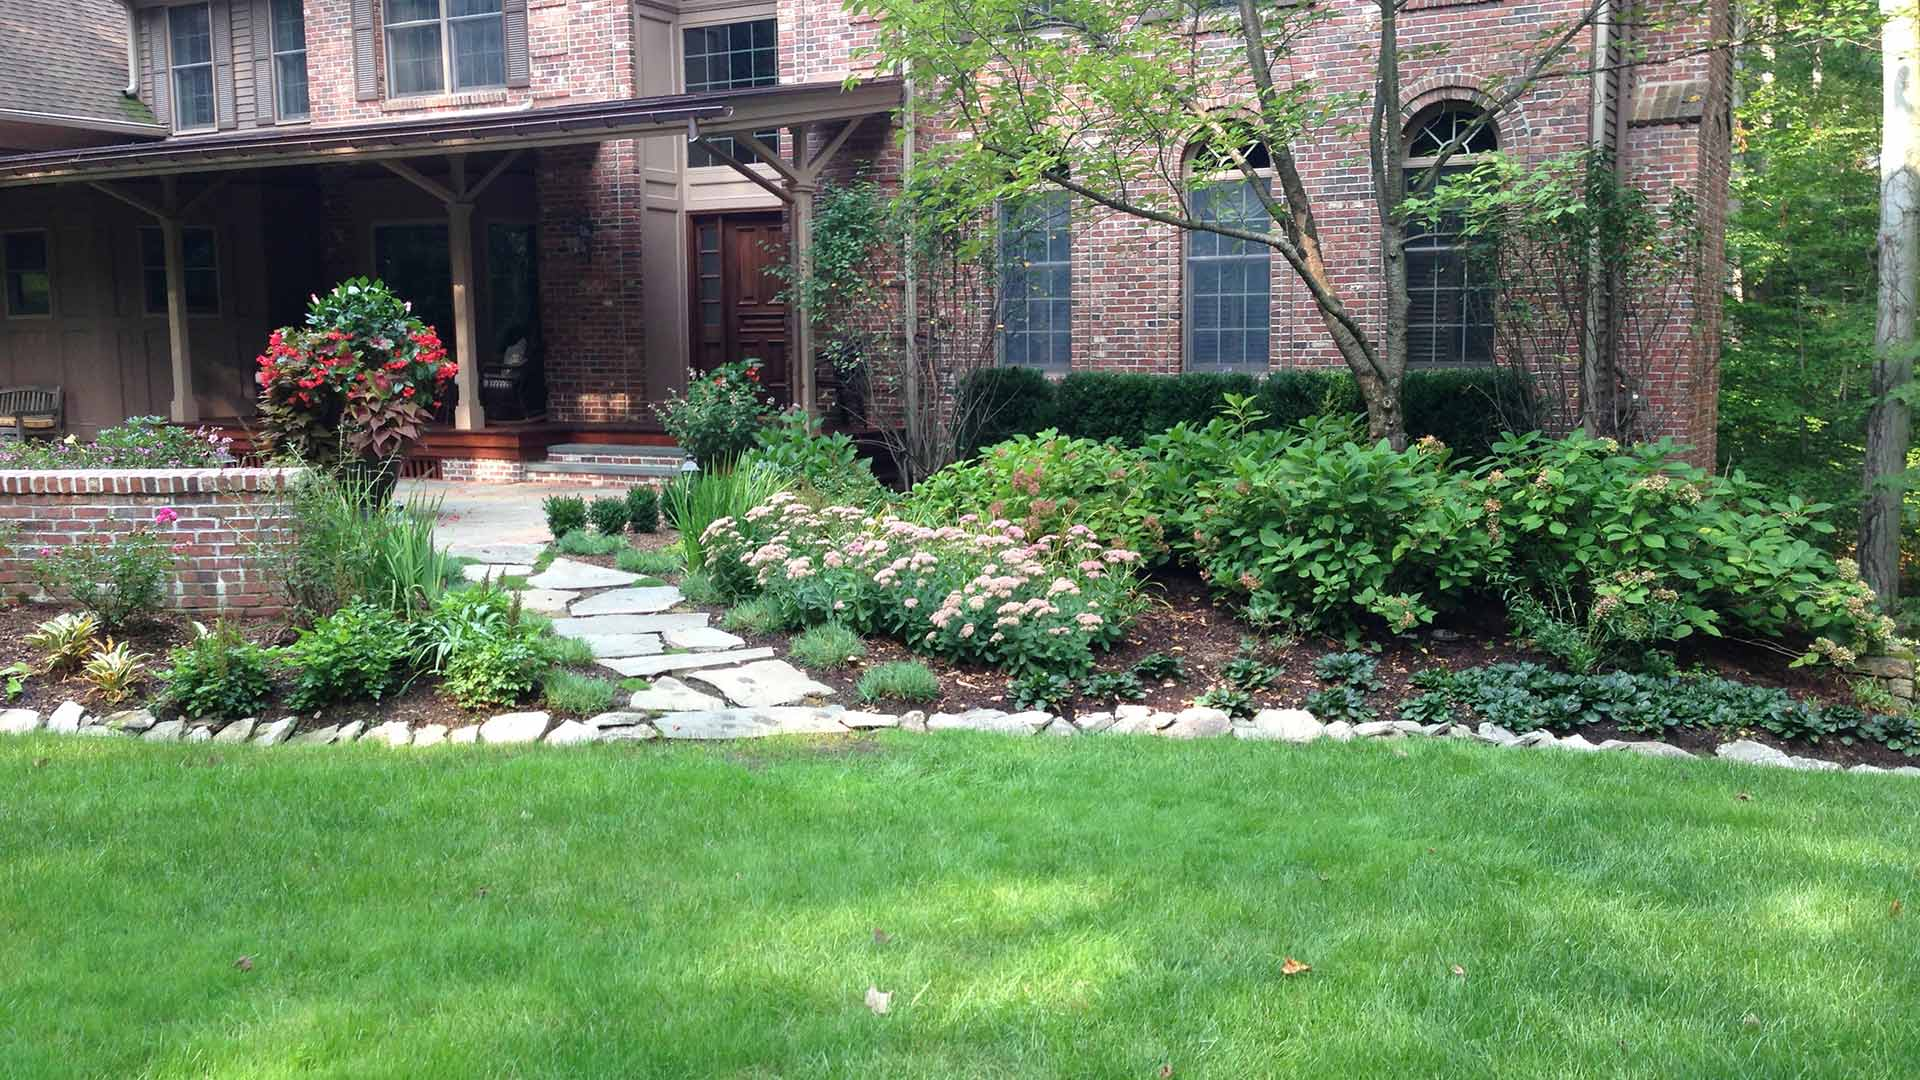 Well landscaped and healthy home lawn in Watchung, NJ.